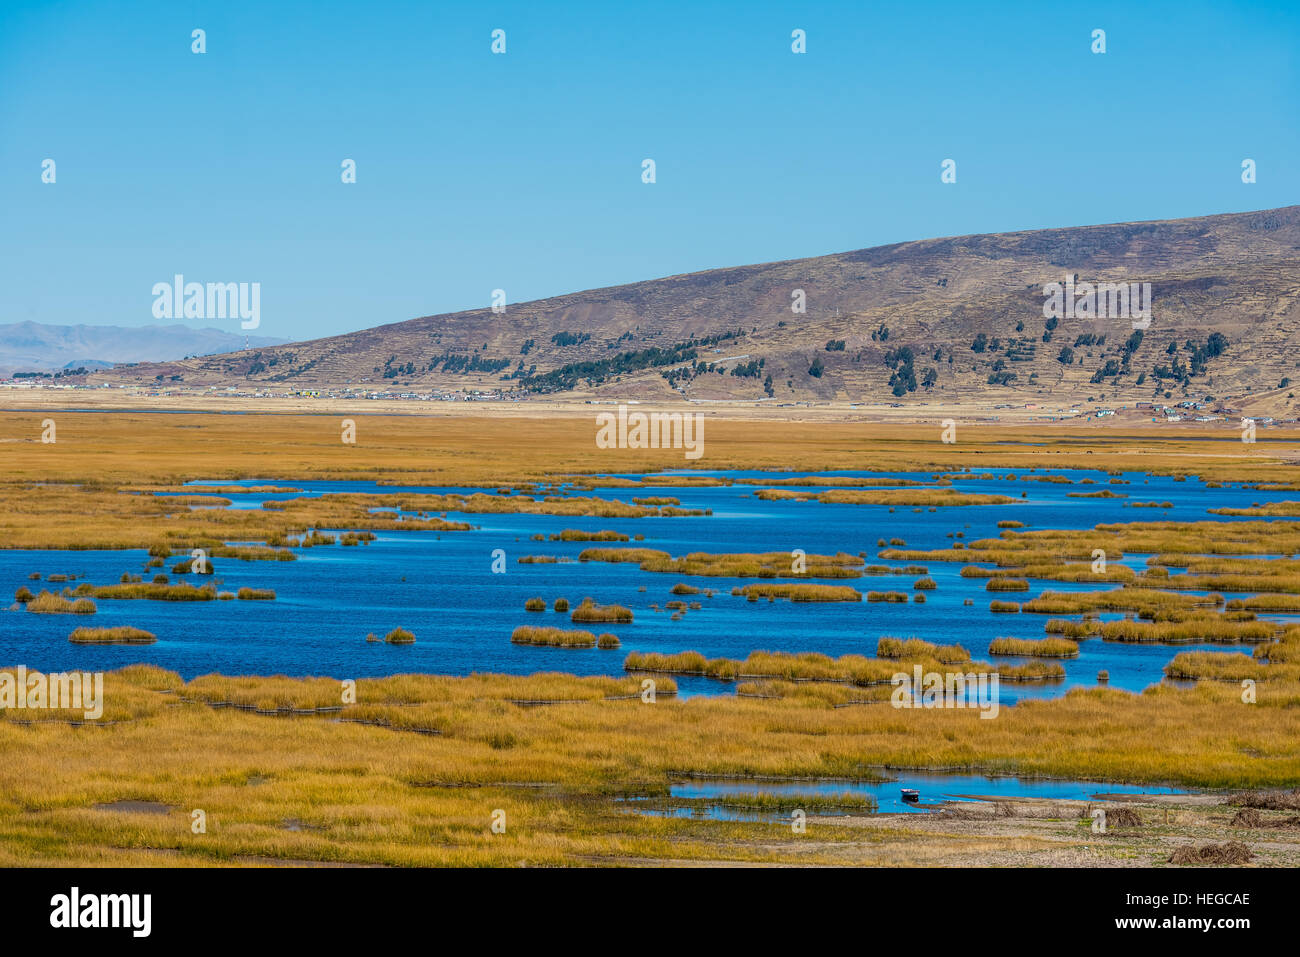 Titicaca Lake in the peruvian Andes at Puno Peru - Stock Image